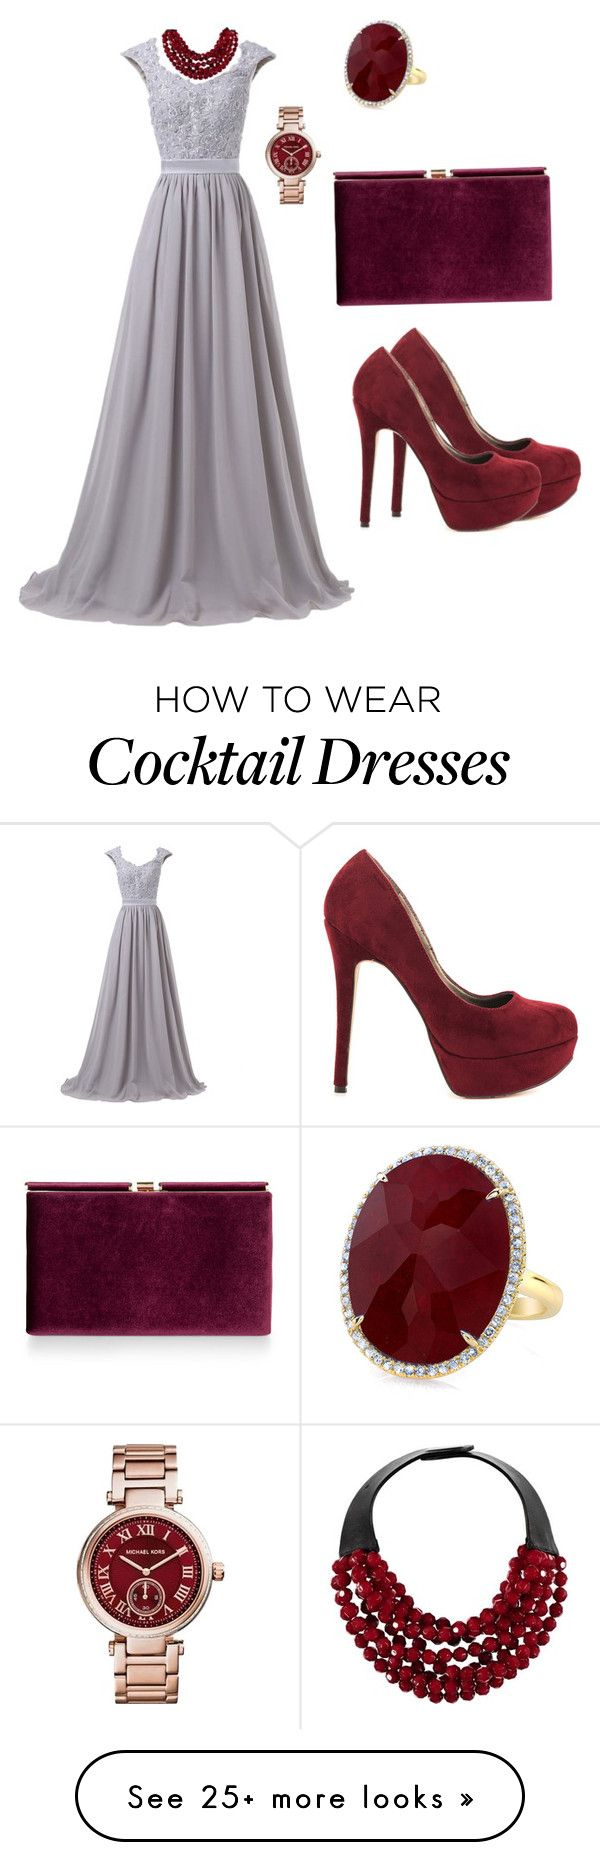 """Untitled #18"" by dolialotaibi on Polyvore featuring Michael Antonio, Monsoon, Fairchild Baldwin and Michael Kors"